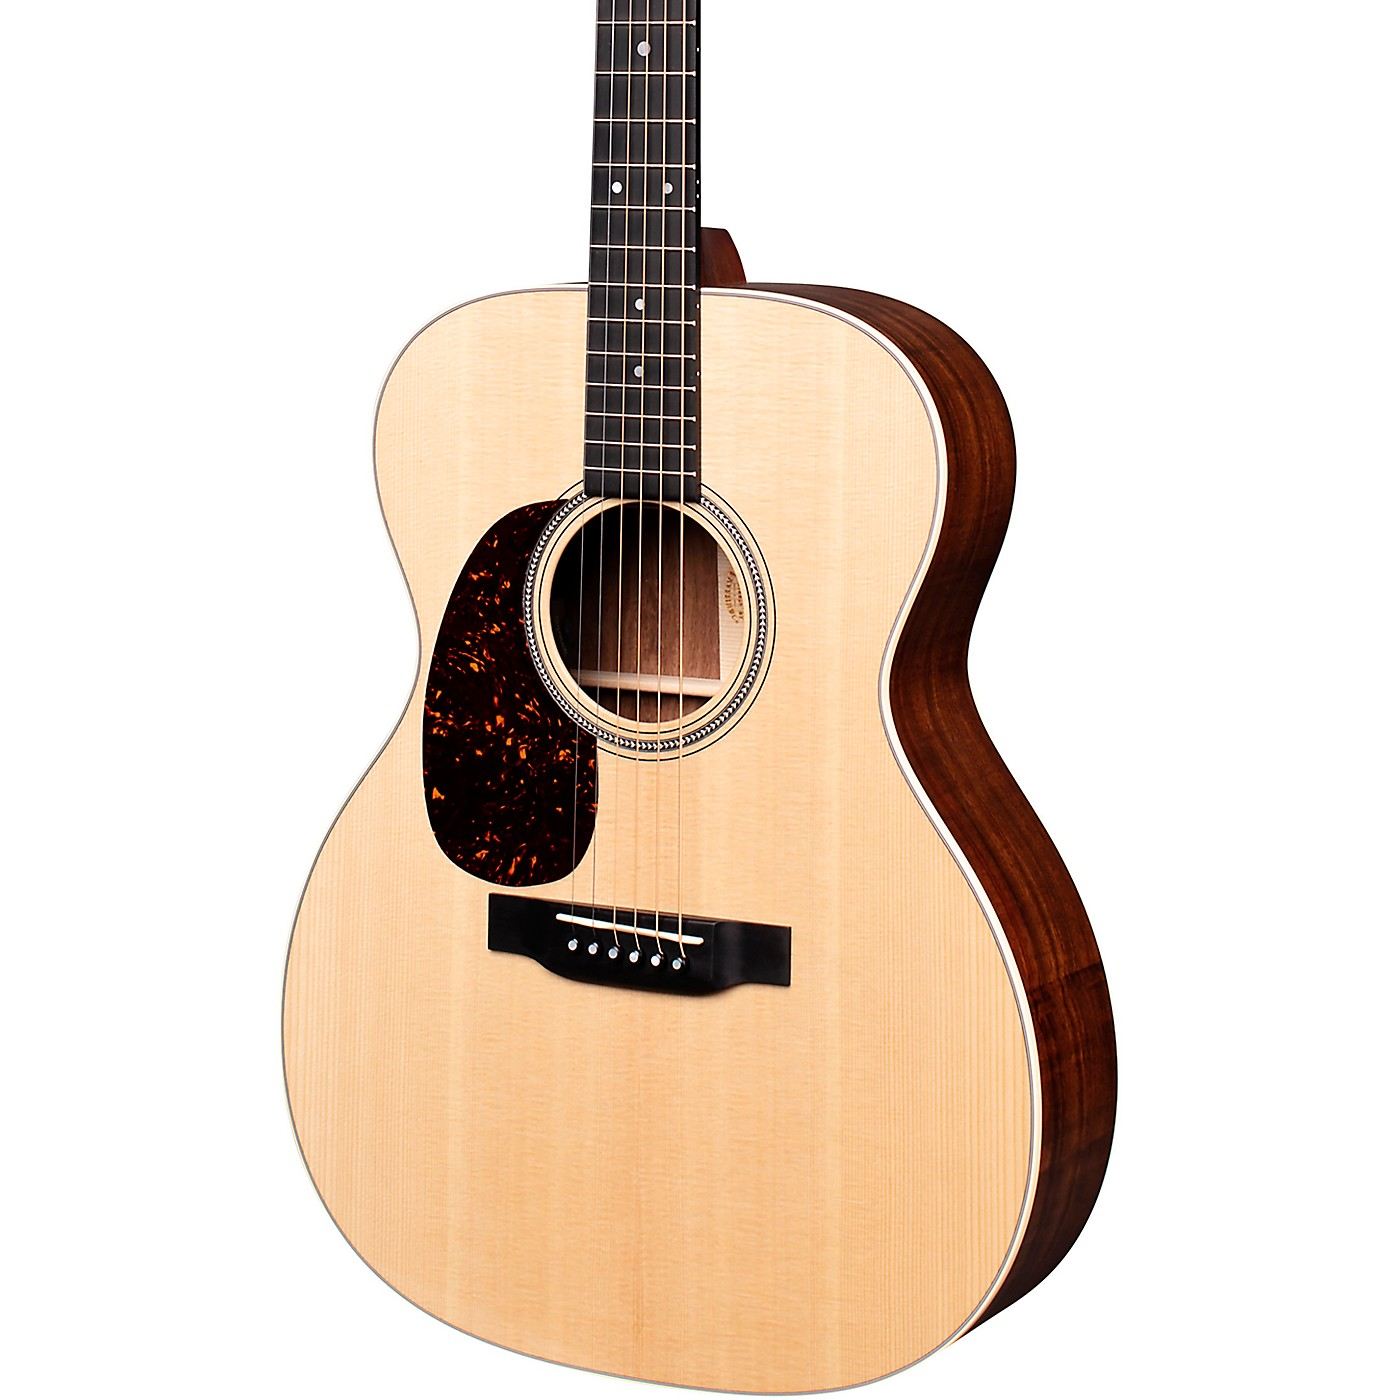 Martin 000-16EL 16 Series with Granadillo Auditorium Left-Handed Acoustic-Electric Guitar thumbnail